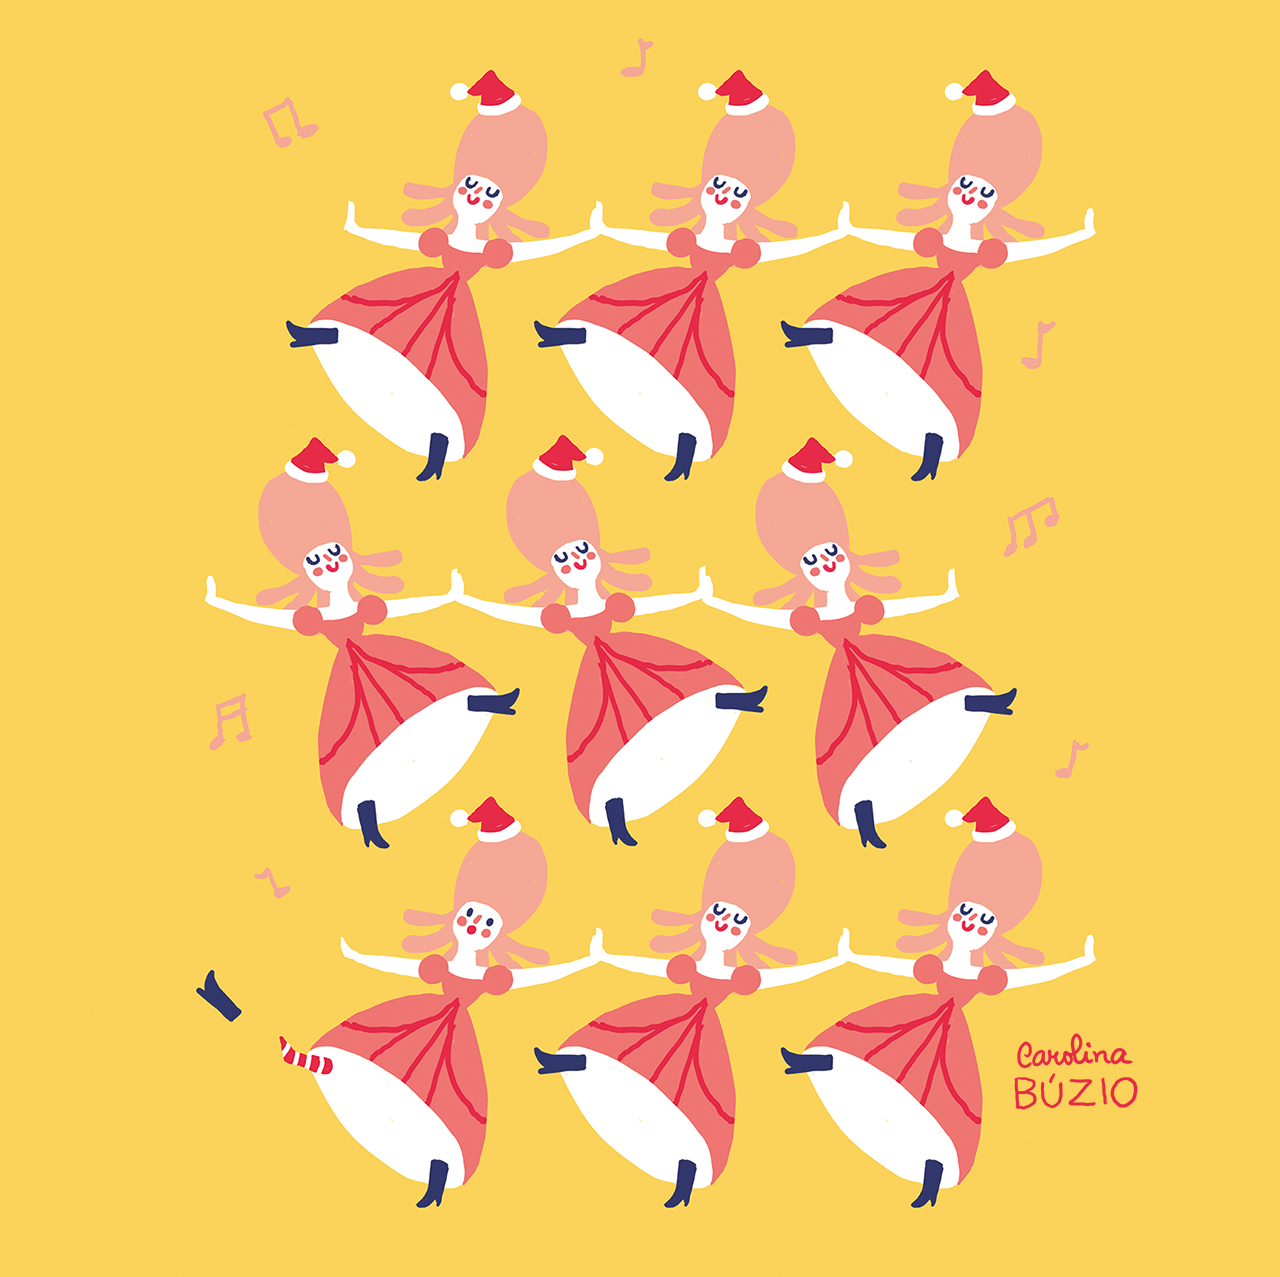 small resolution of 9 ladies dancing and 9 days for december to start by carolina buzio